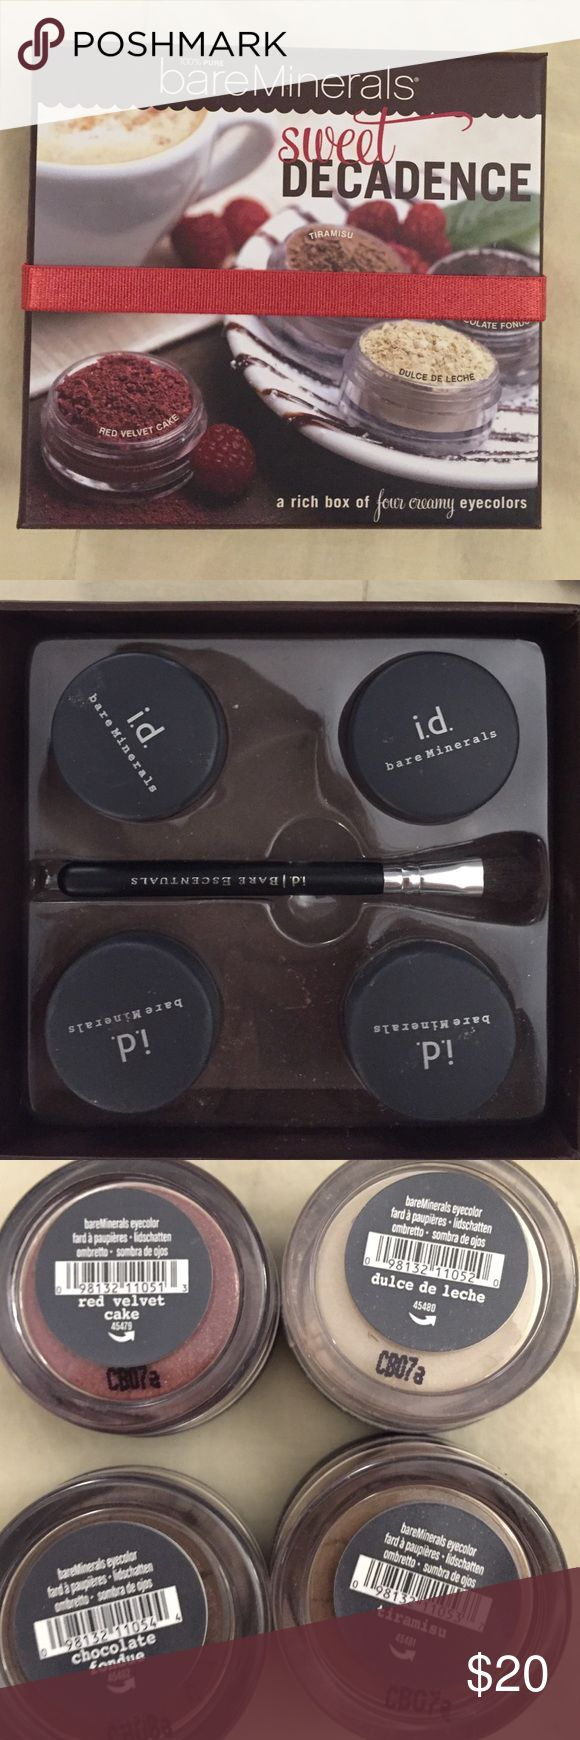 4 delicious bare mineral eye shadows Sweet decadence bare minerals eye shadows, red velvet, tiramisu, chocolate fondue, and dulce de leche eye shadows. Only opened to sample the colors! And the brush is included bareMinerals Makeup Eyeshadow